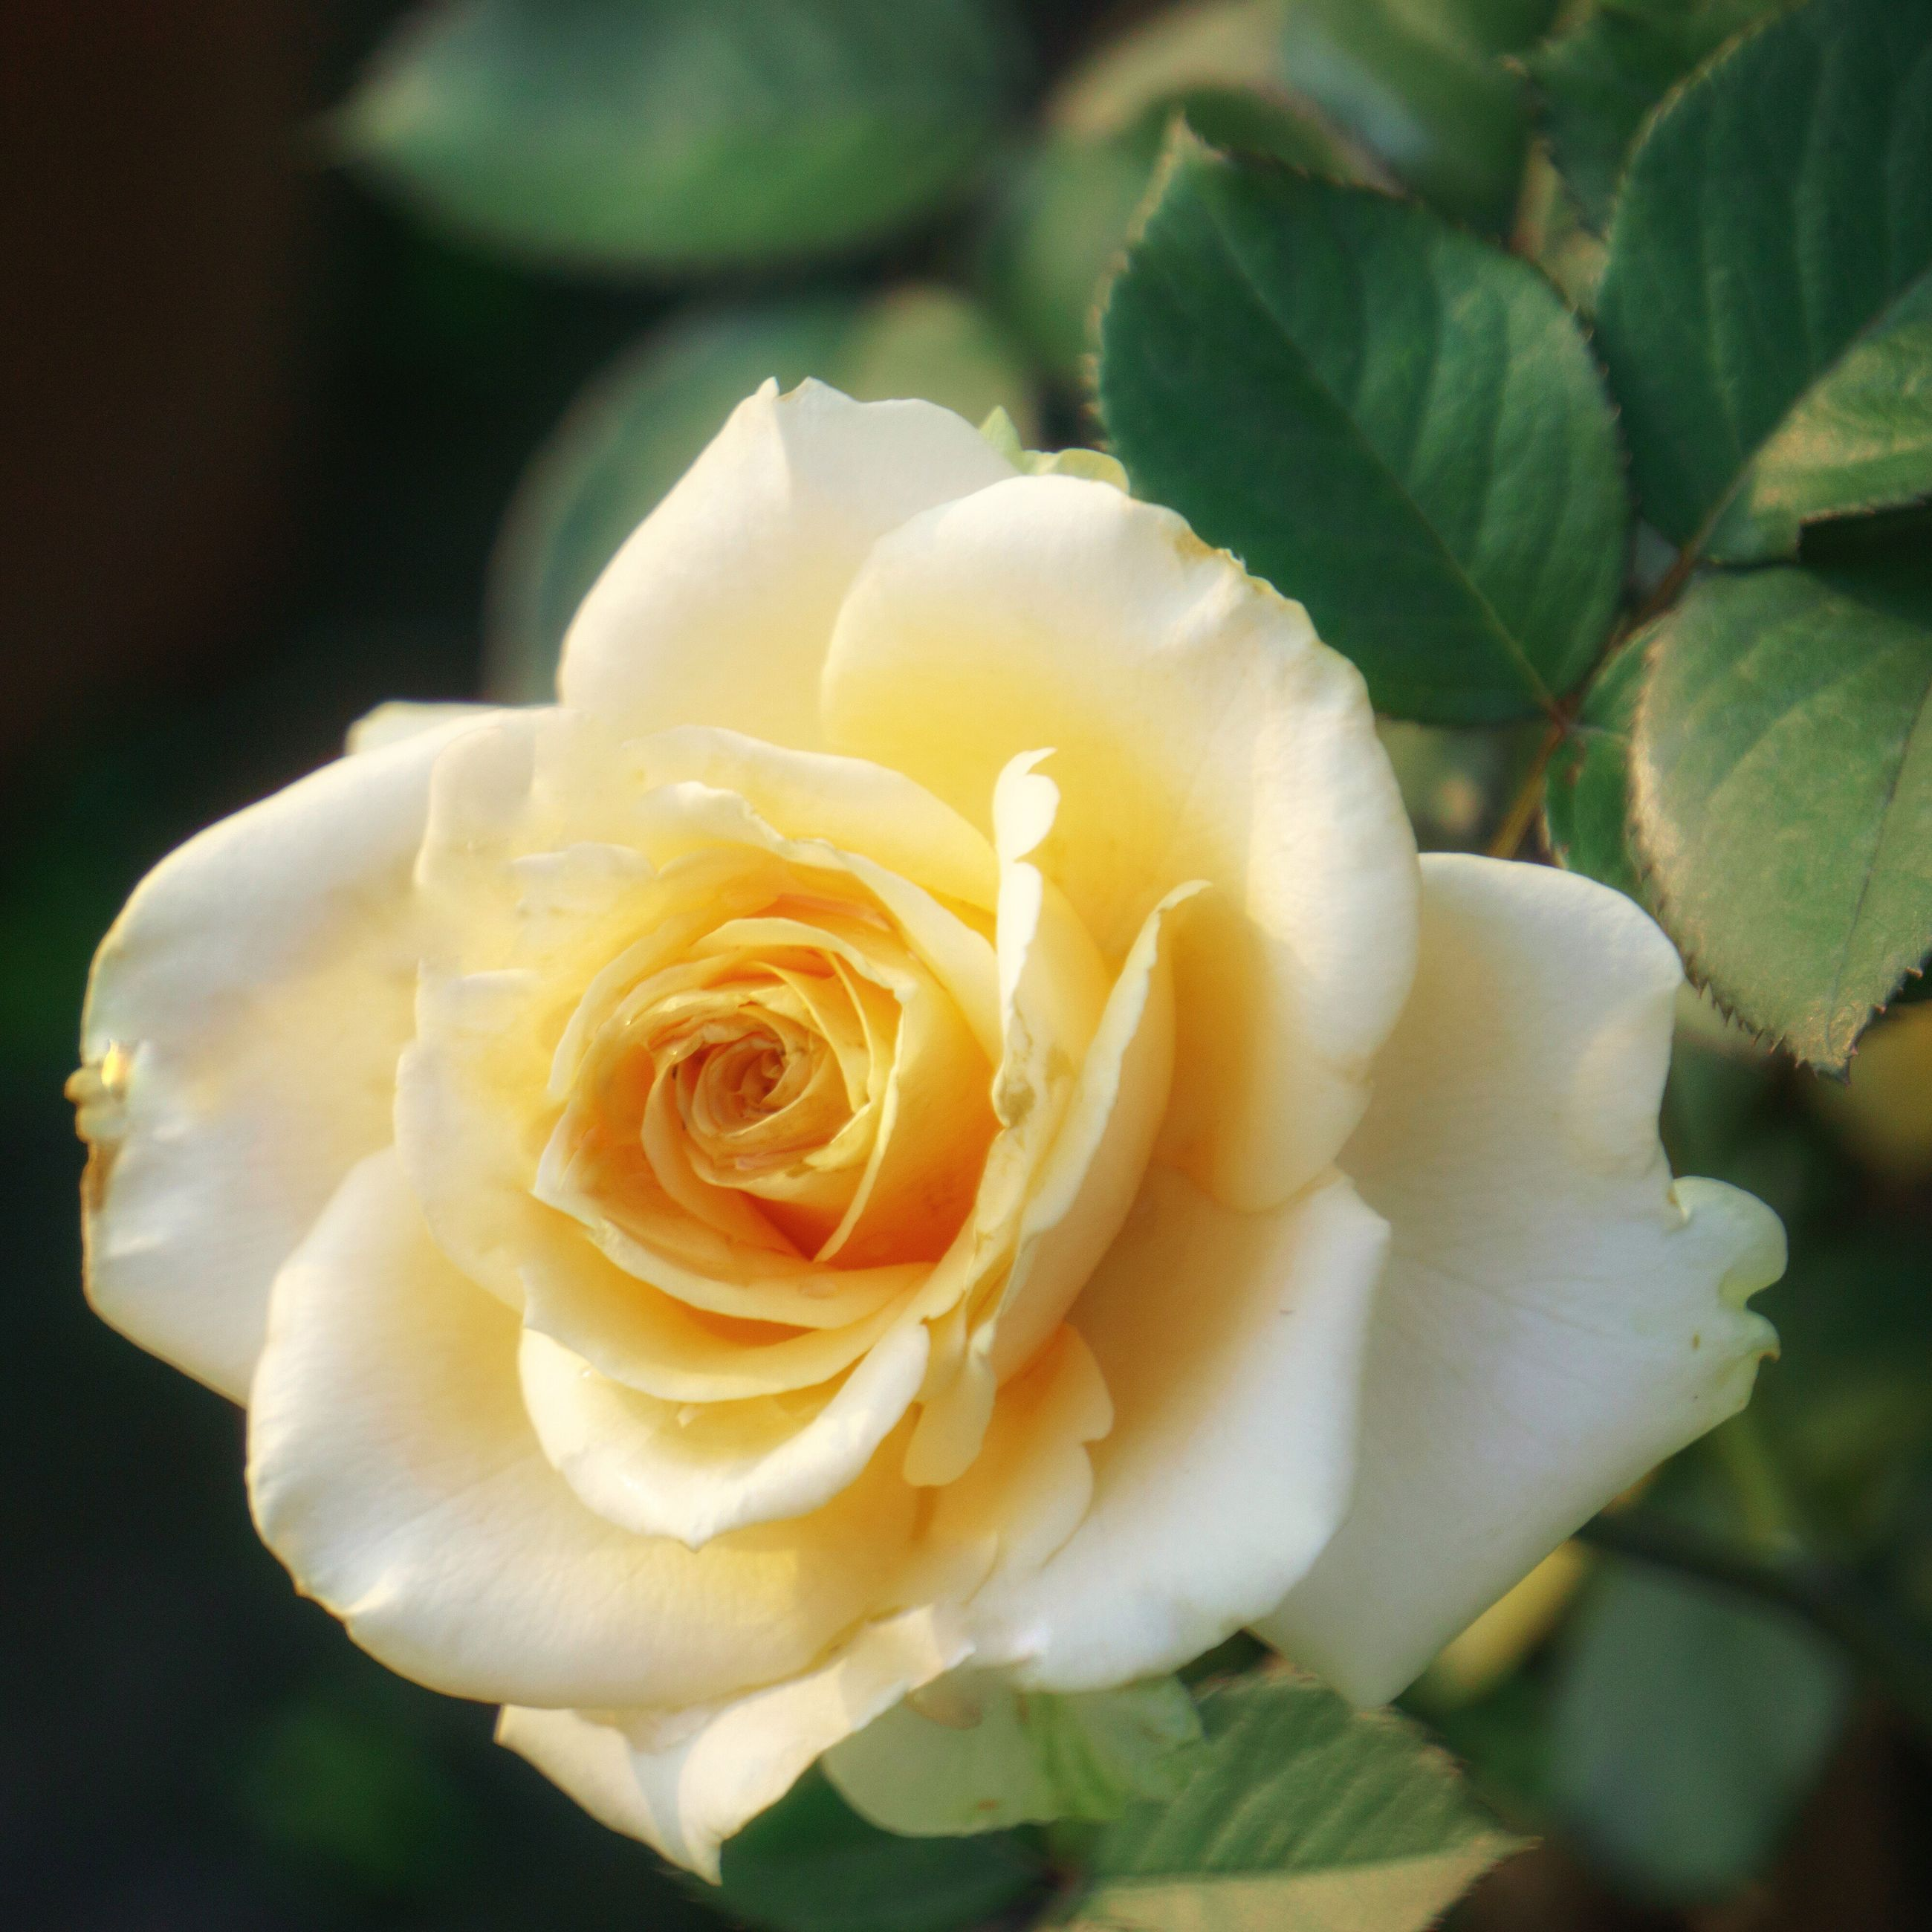 flower, petal, rose - flower, flower head, freshness, fragility, beauty in nature, close-up, rose, single flower, growth, single rose, yellow, nature, focus on foreground, blooming, white color, in bloom, blossom, no people